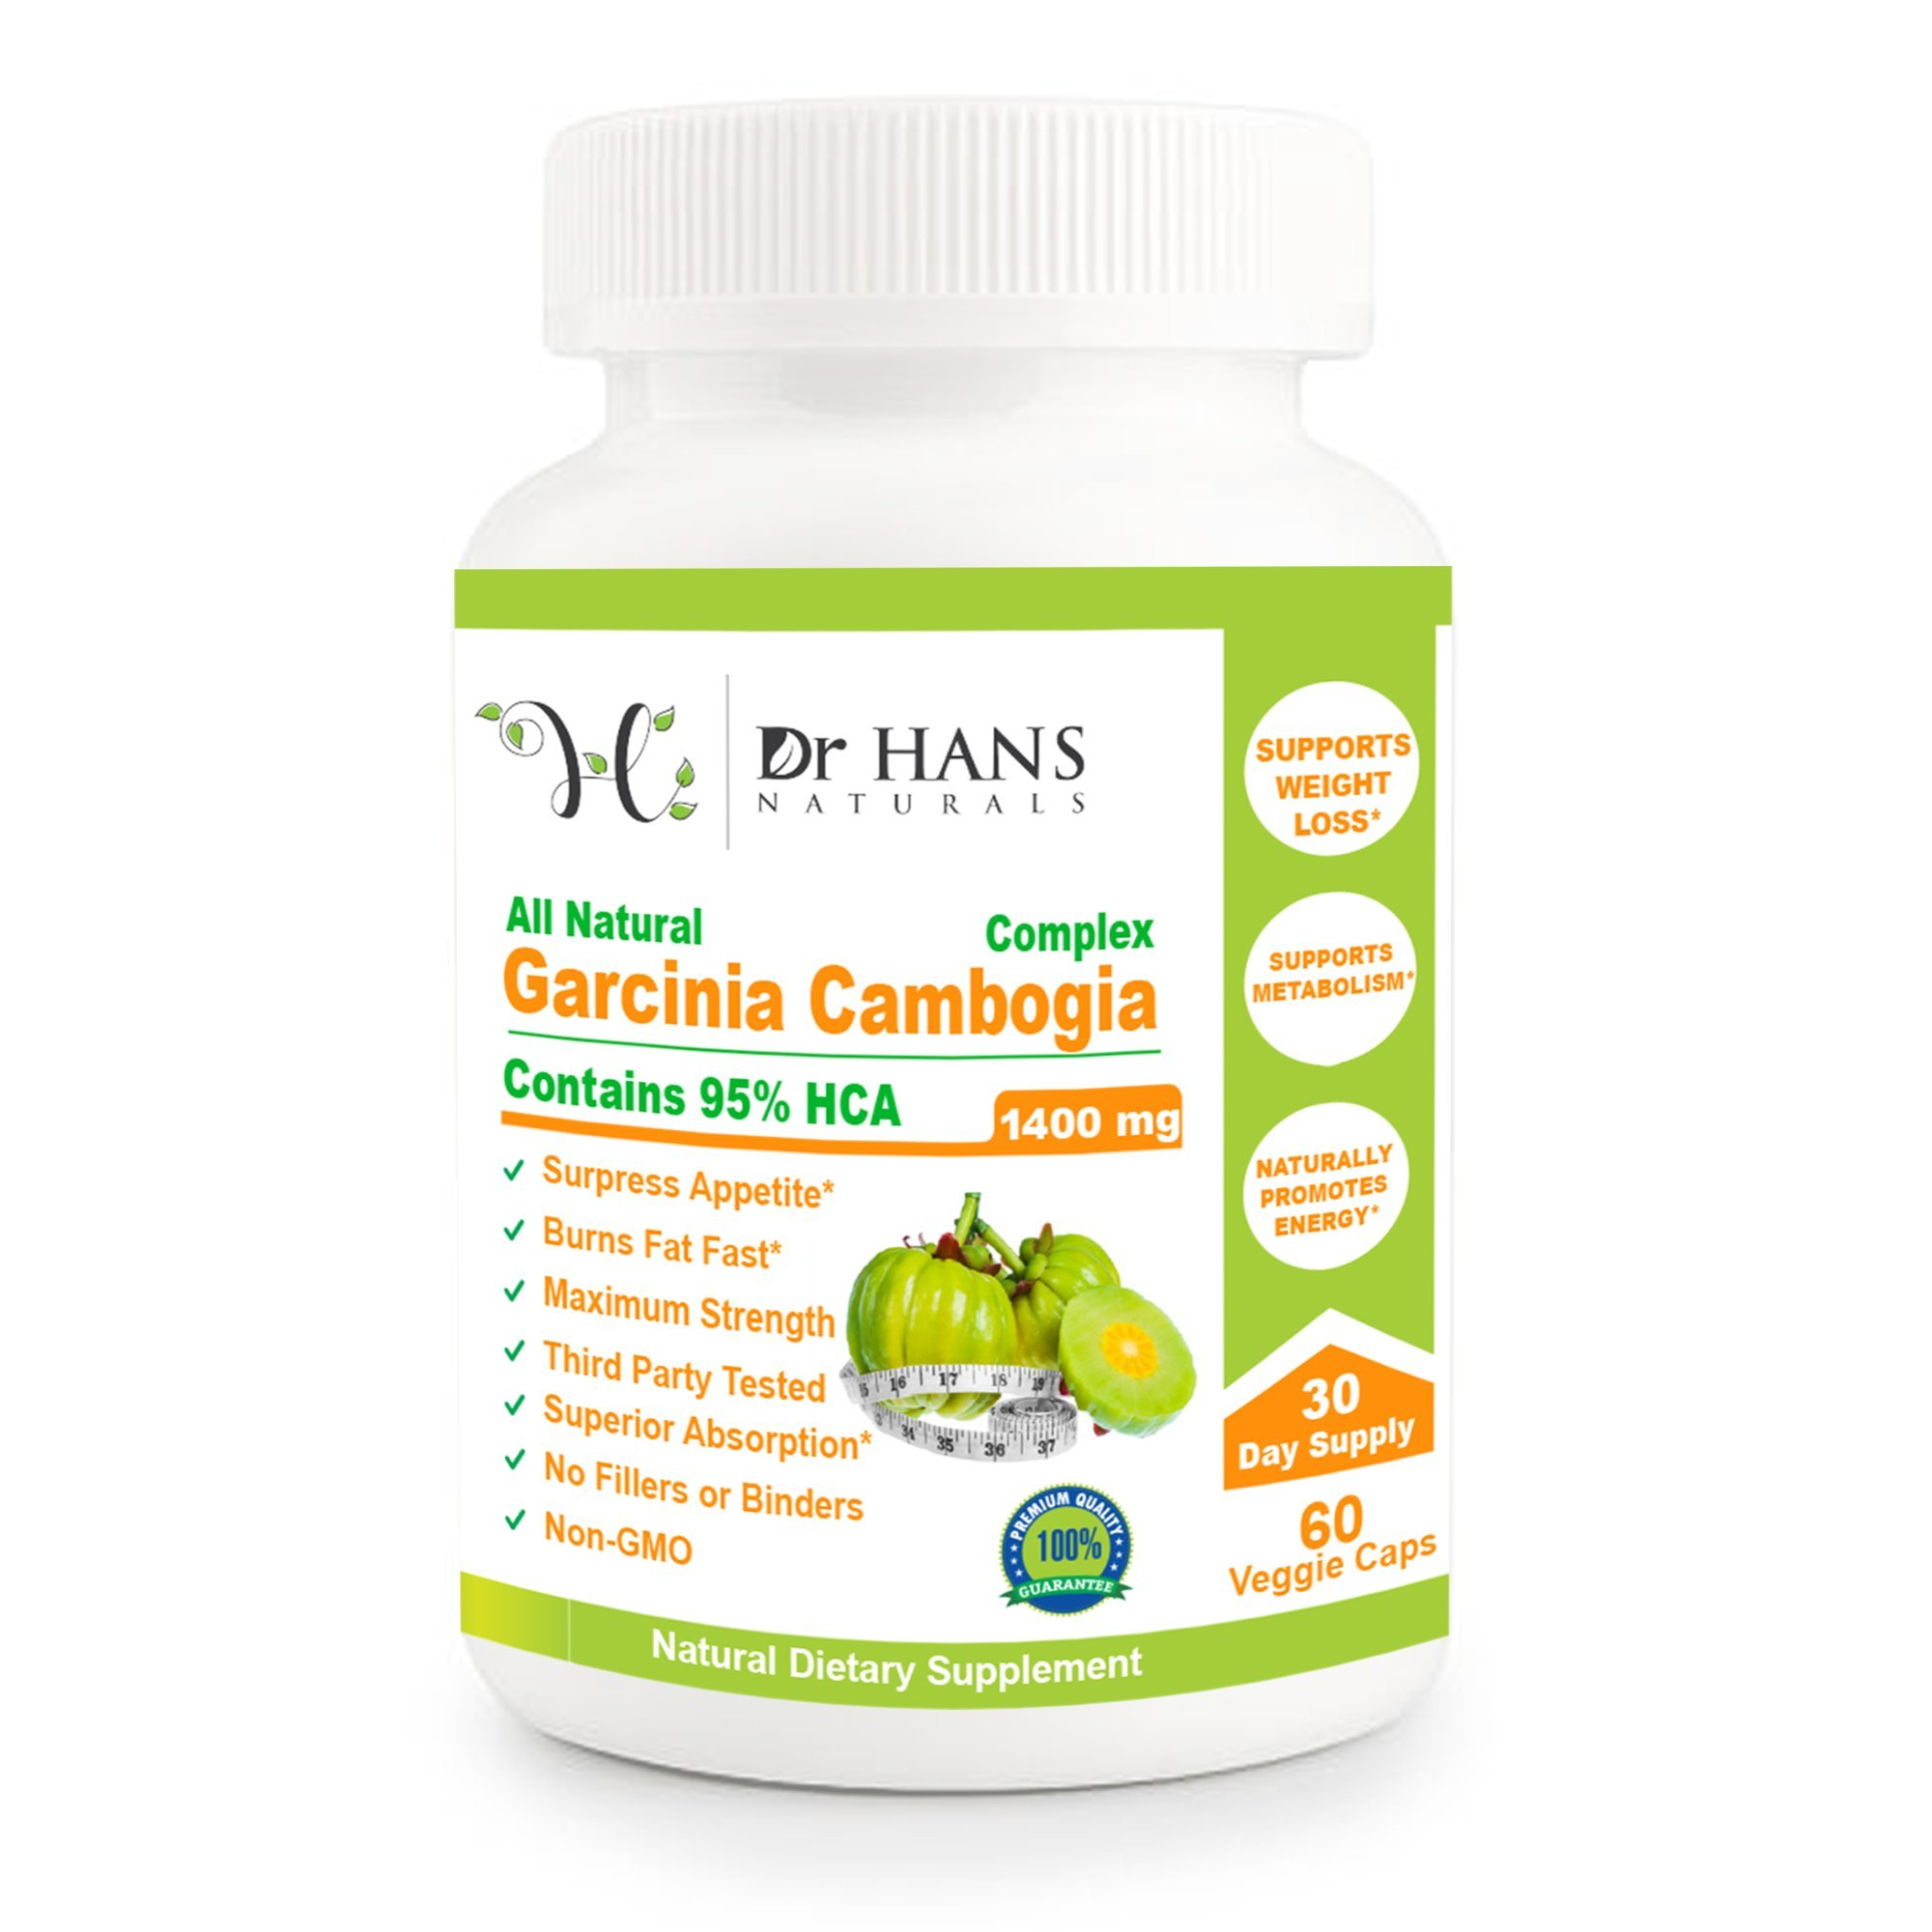 Garcinia Cambogia 100% Natural Pure Garcinia Cambogia Extract with HCA - All Natural Appetite Suppressant, Weight Loss Supplement